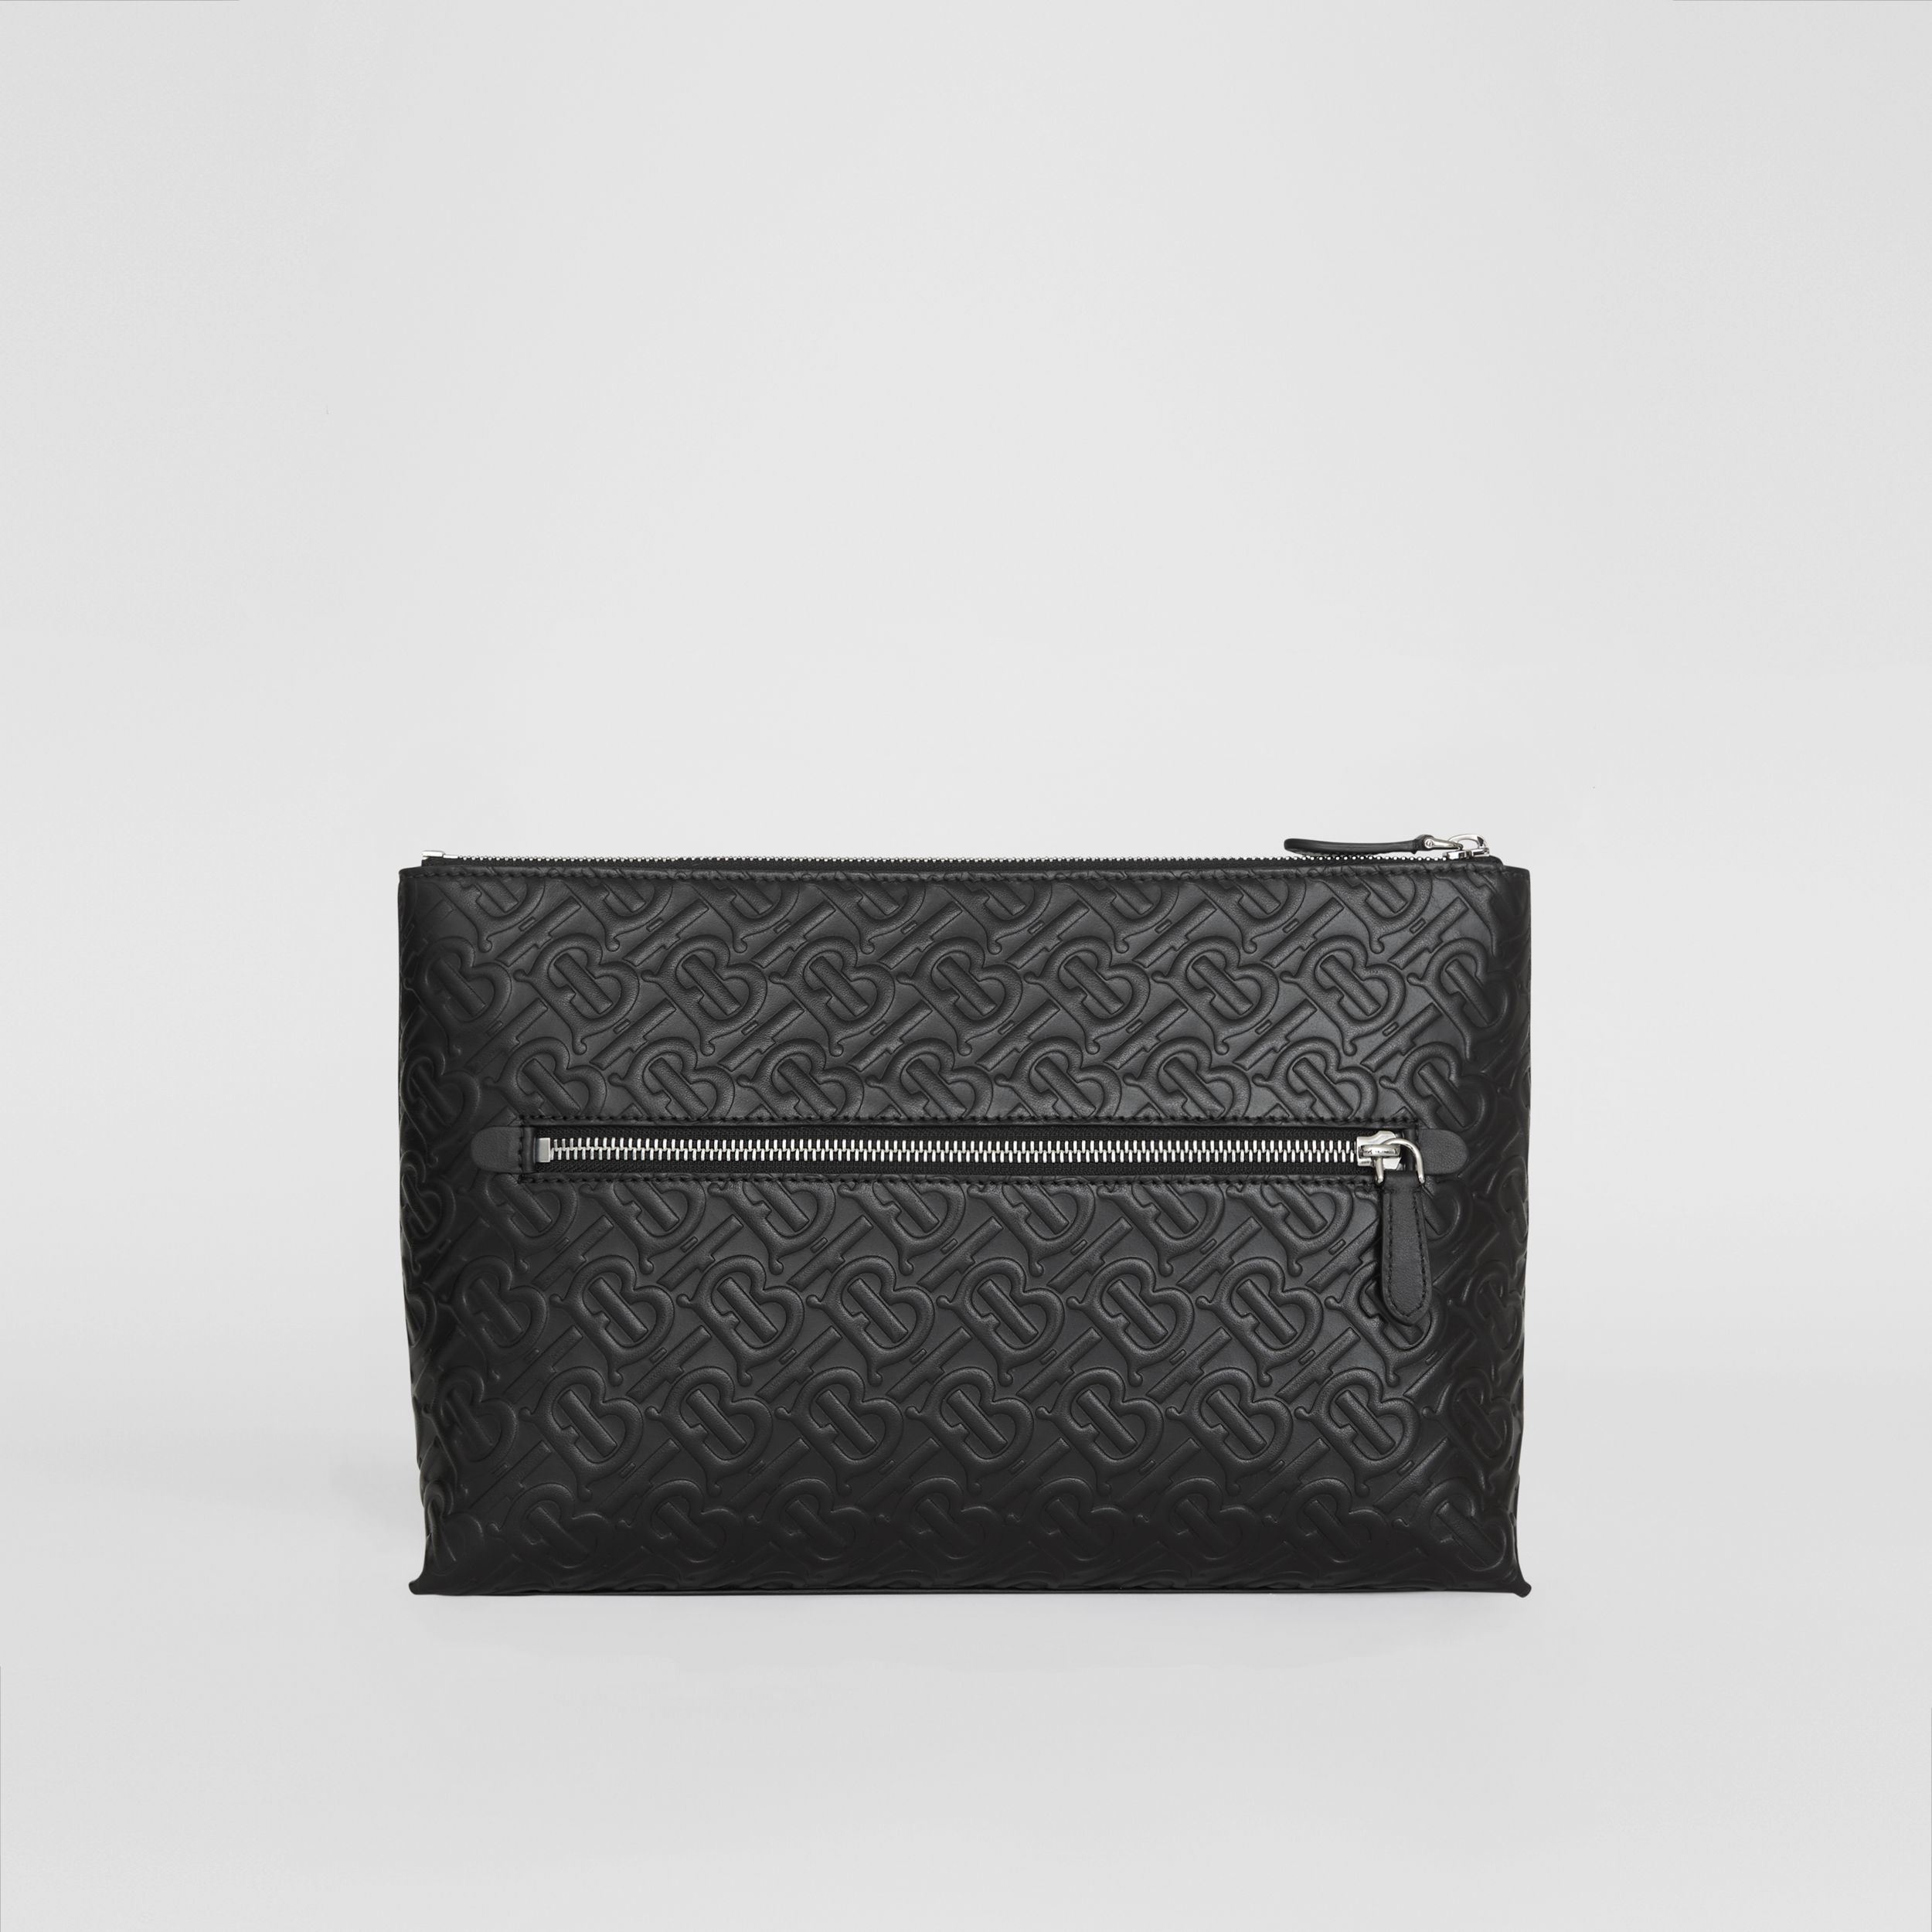 Monogram Leather Zip Pouch in Black | Burberry Australia - 1